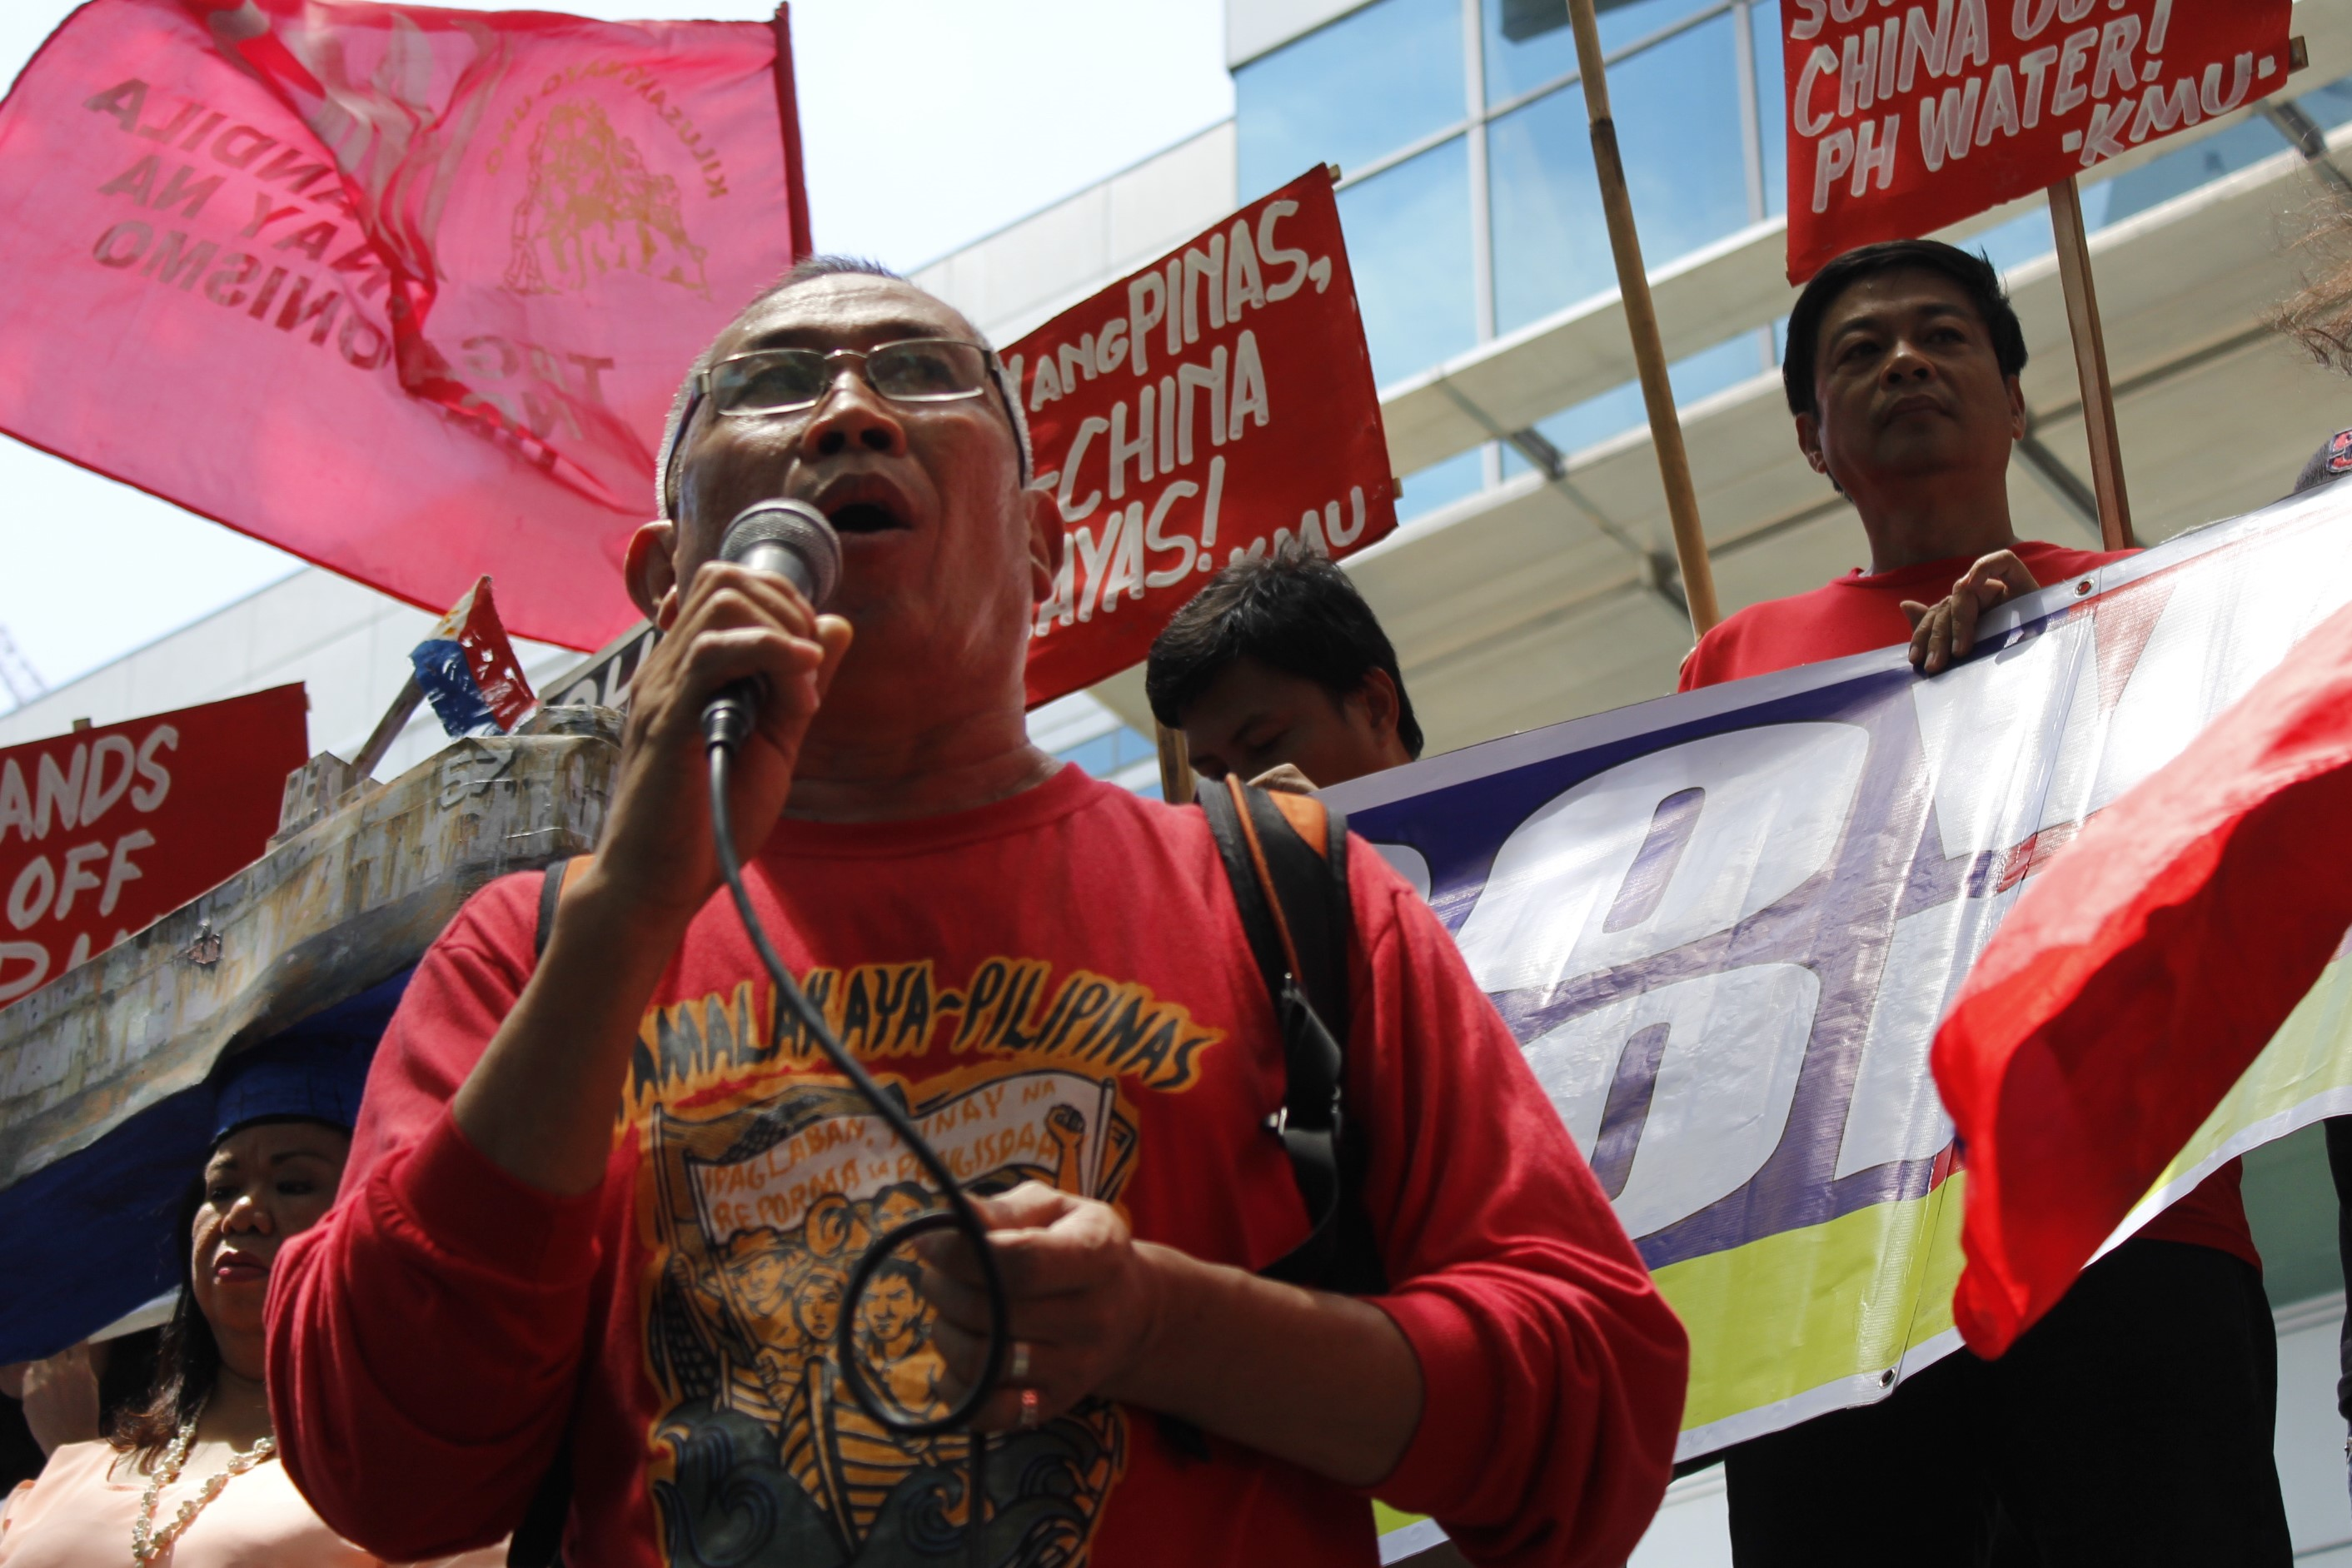 Pamalakaya vice chairperson Salvador France (foreground) at the protest in front of the Chinese Consulate in Makati City. (Photo by Karen Ann Macalalad/Bulatlat)